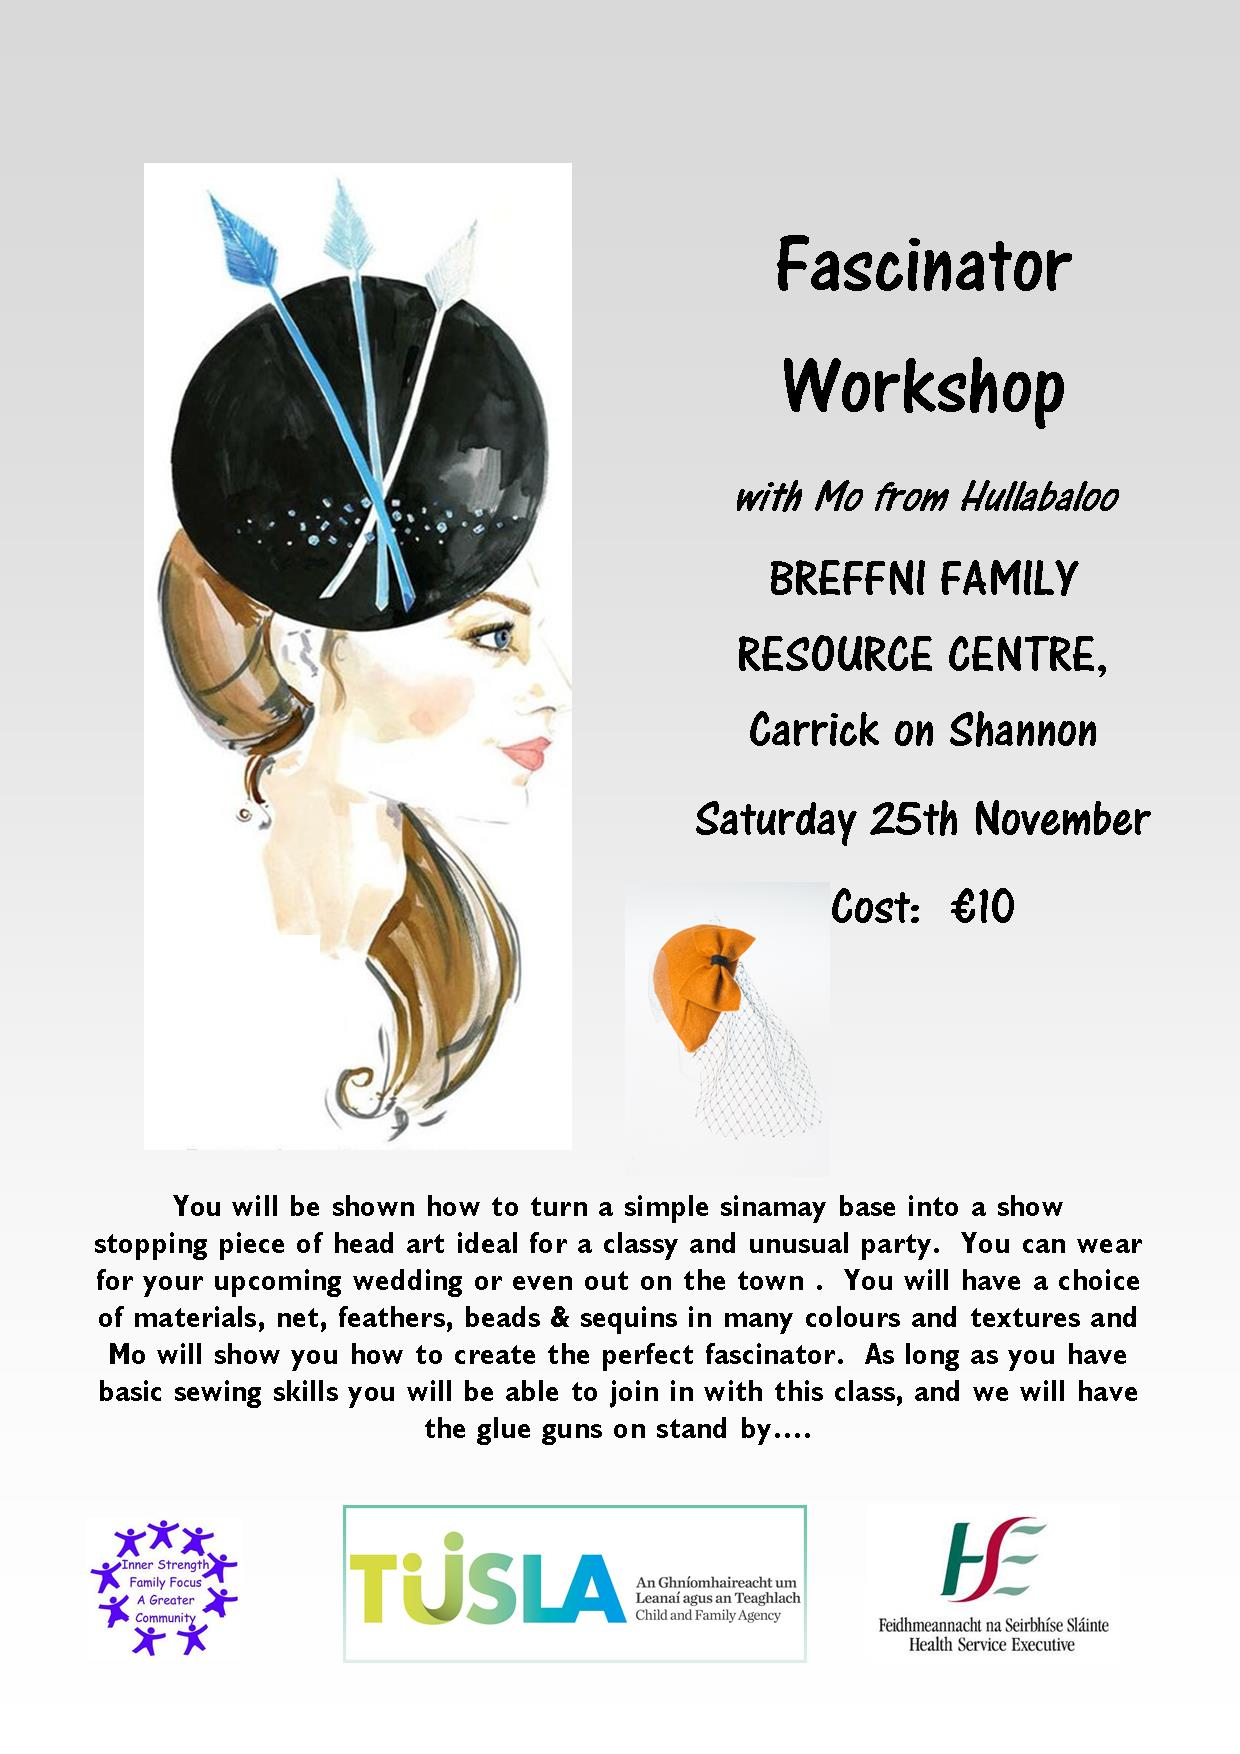 MyCarrick Event - Breffni Family Resource Centre - Fascinator Workshop